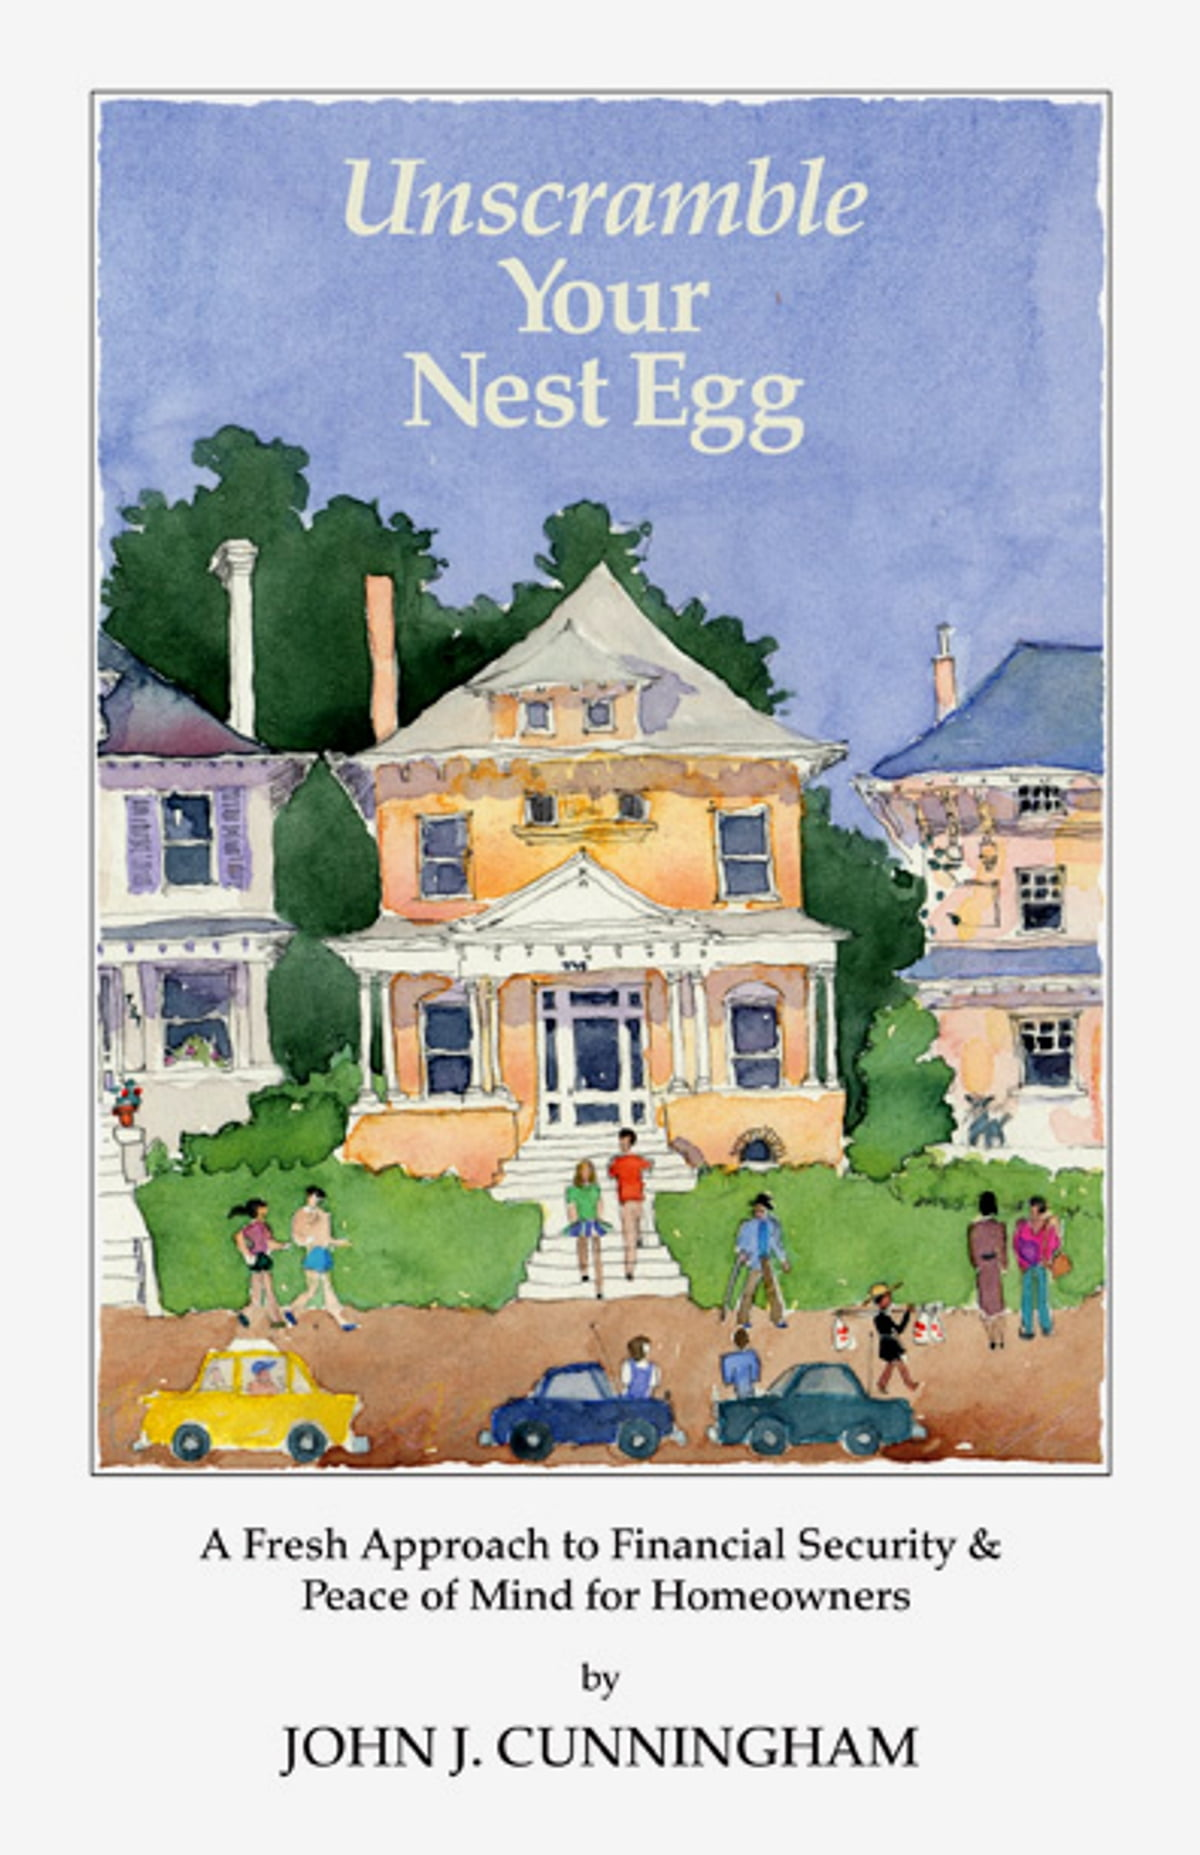 Unscramble Your Nest Egg in 2011